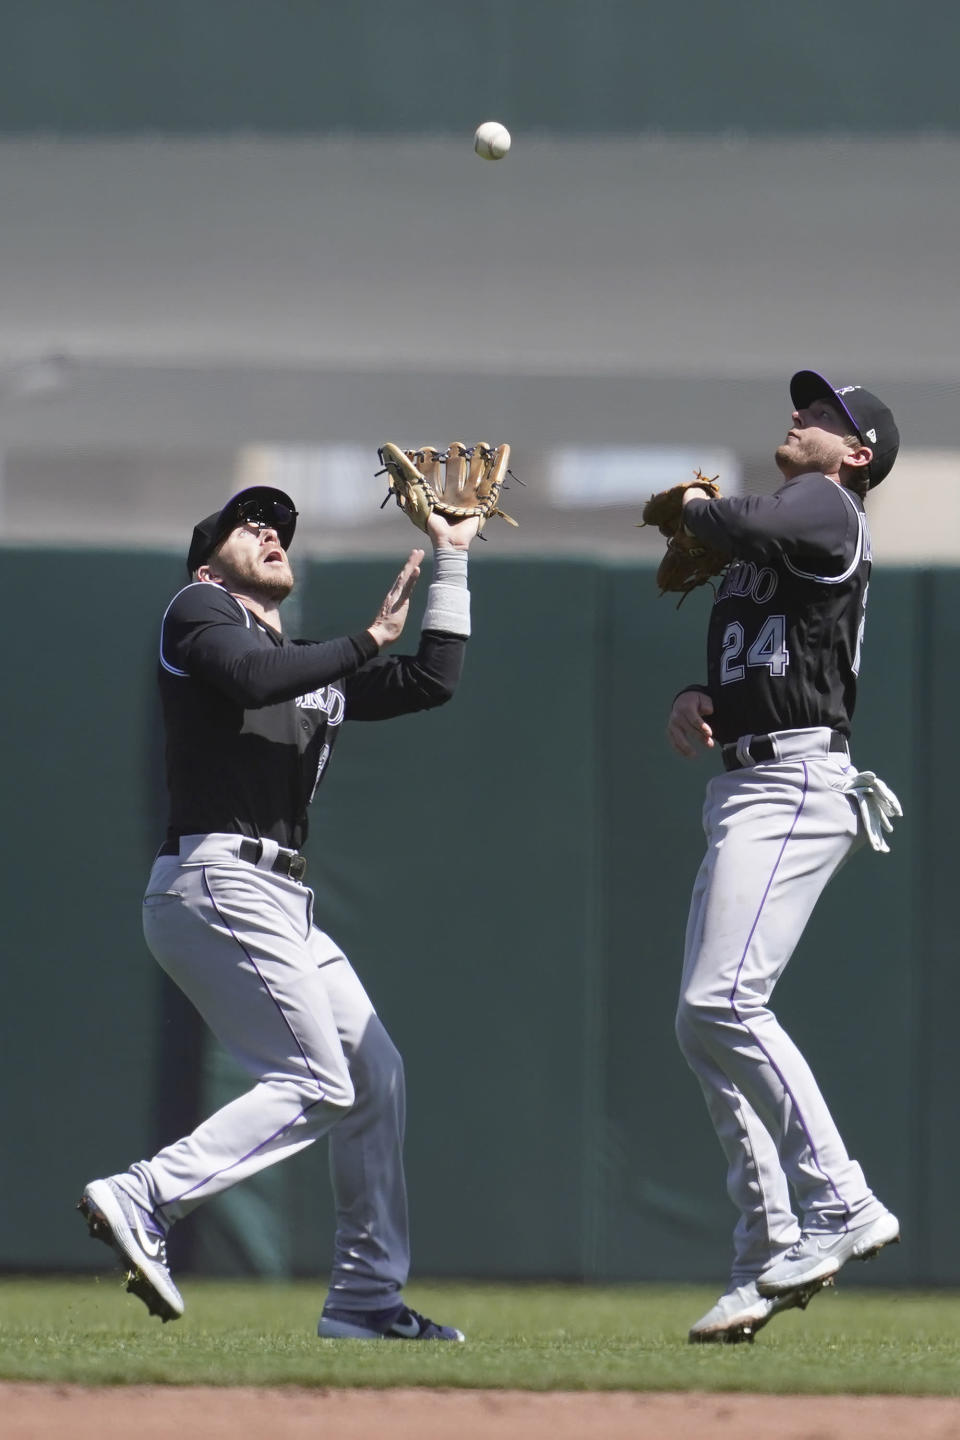 Colorado Rockies shortstop Trevor Story, left, catches a fly ball hit by San Francisco Giants' Brandon Crawford next to second baseman Ryan McMahon (24) during the second inning of a baseball game in San Francisco, Saturday, April 10, 2021. (AP Photo/Jeff Chiu)